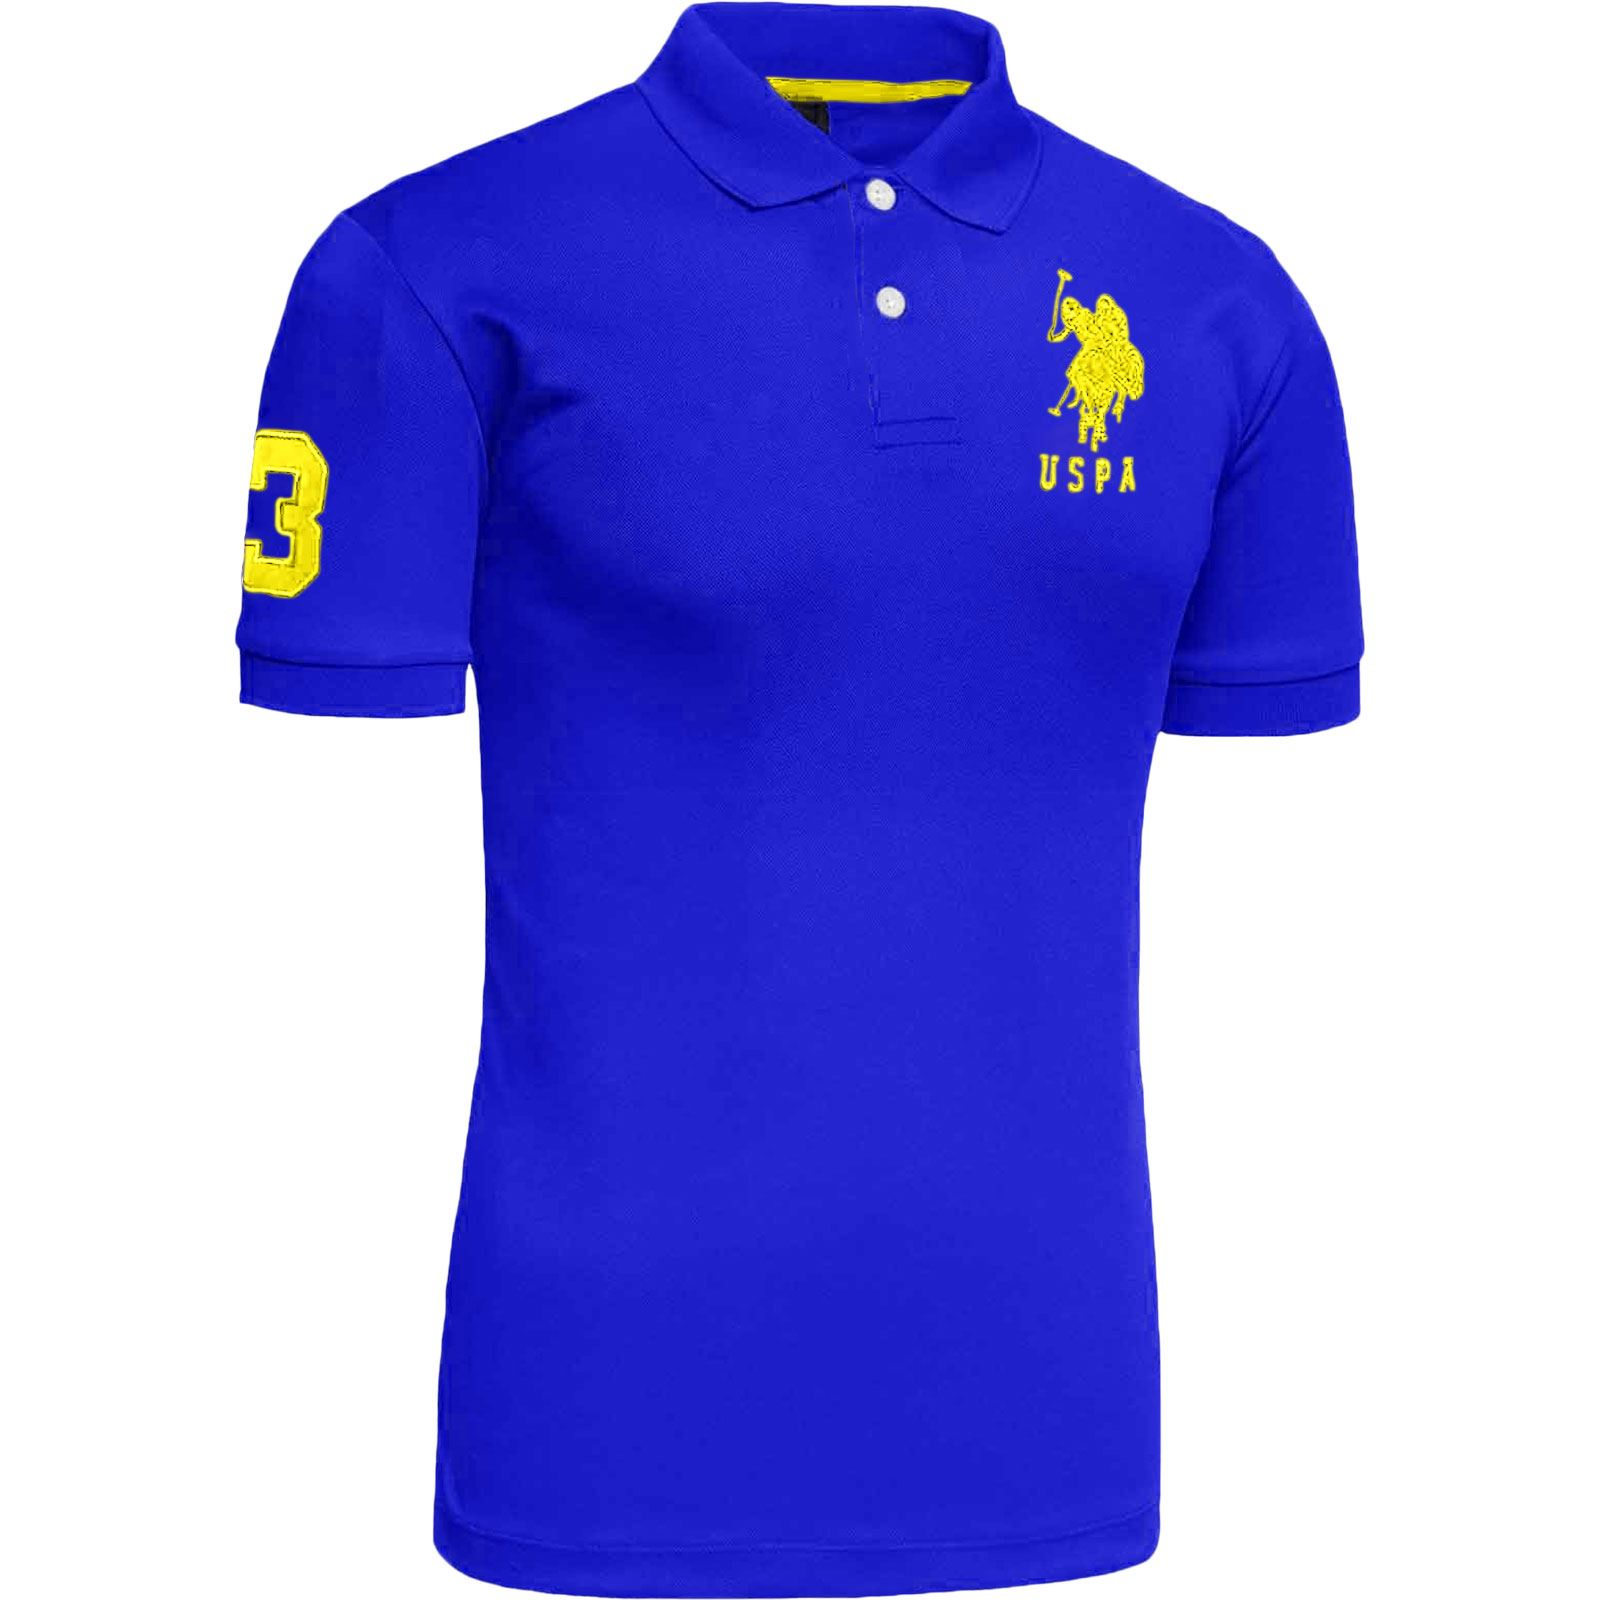 mens us polo assn pique t shirt original shirt branded top. Black Bedroom Furniture Sets. Home Design Ideas